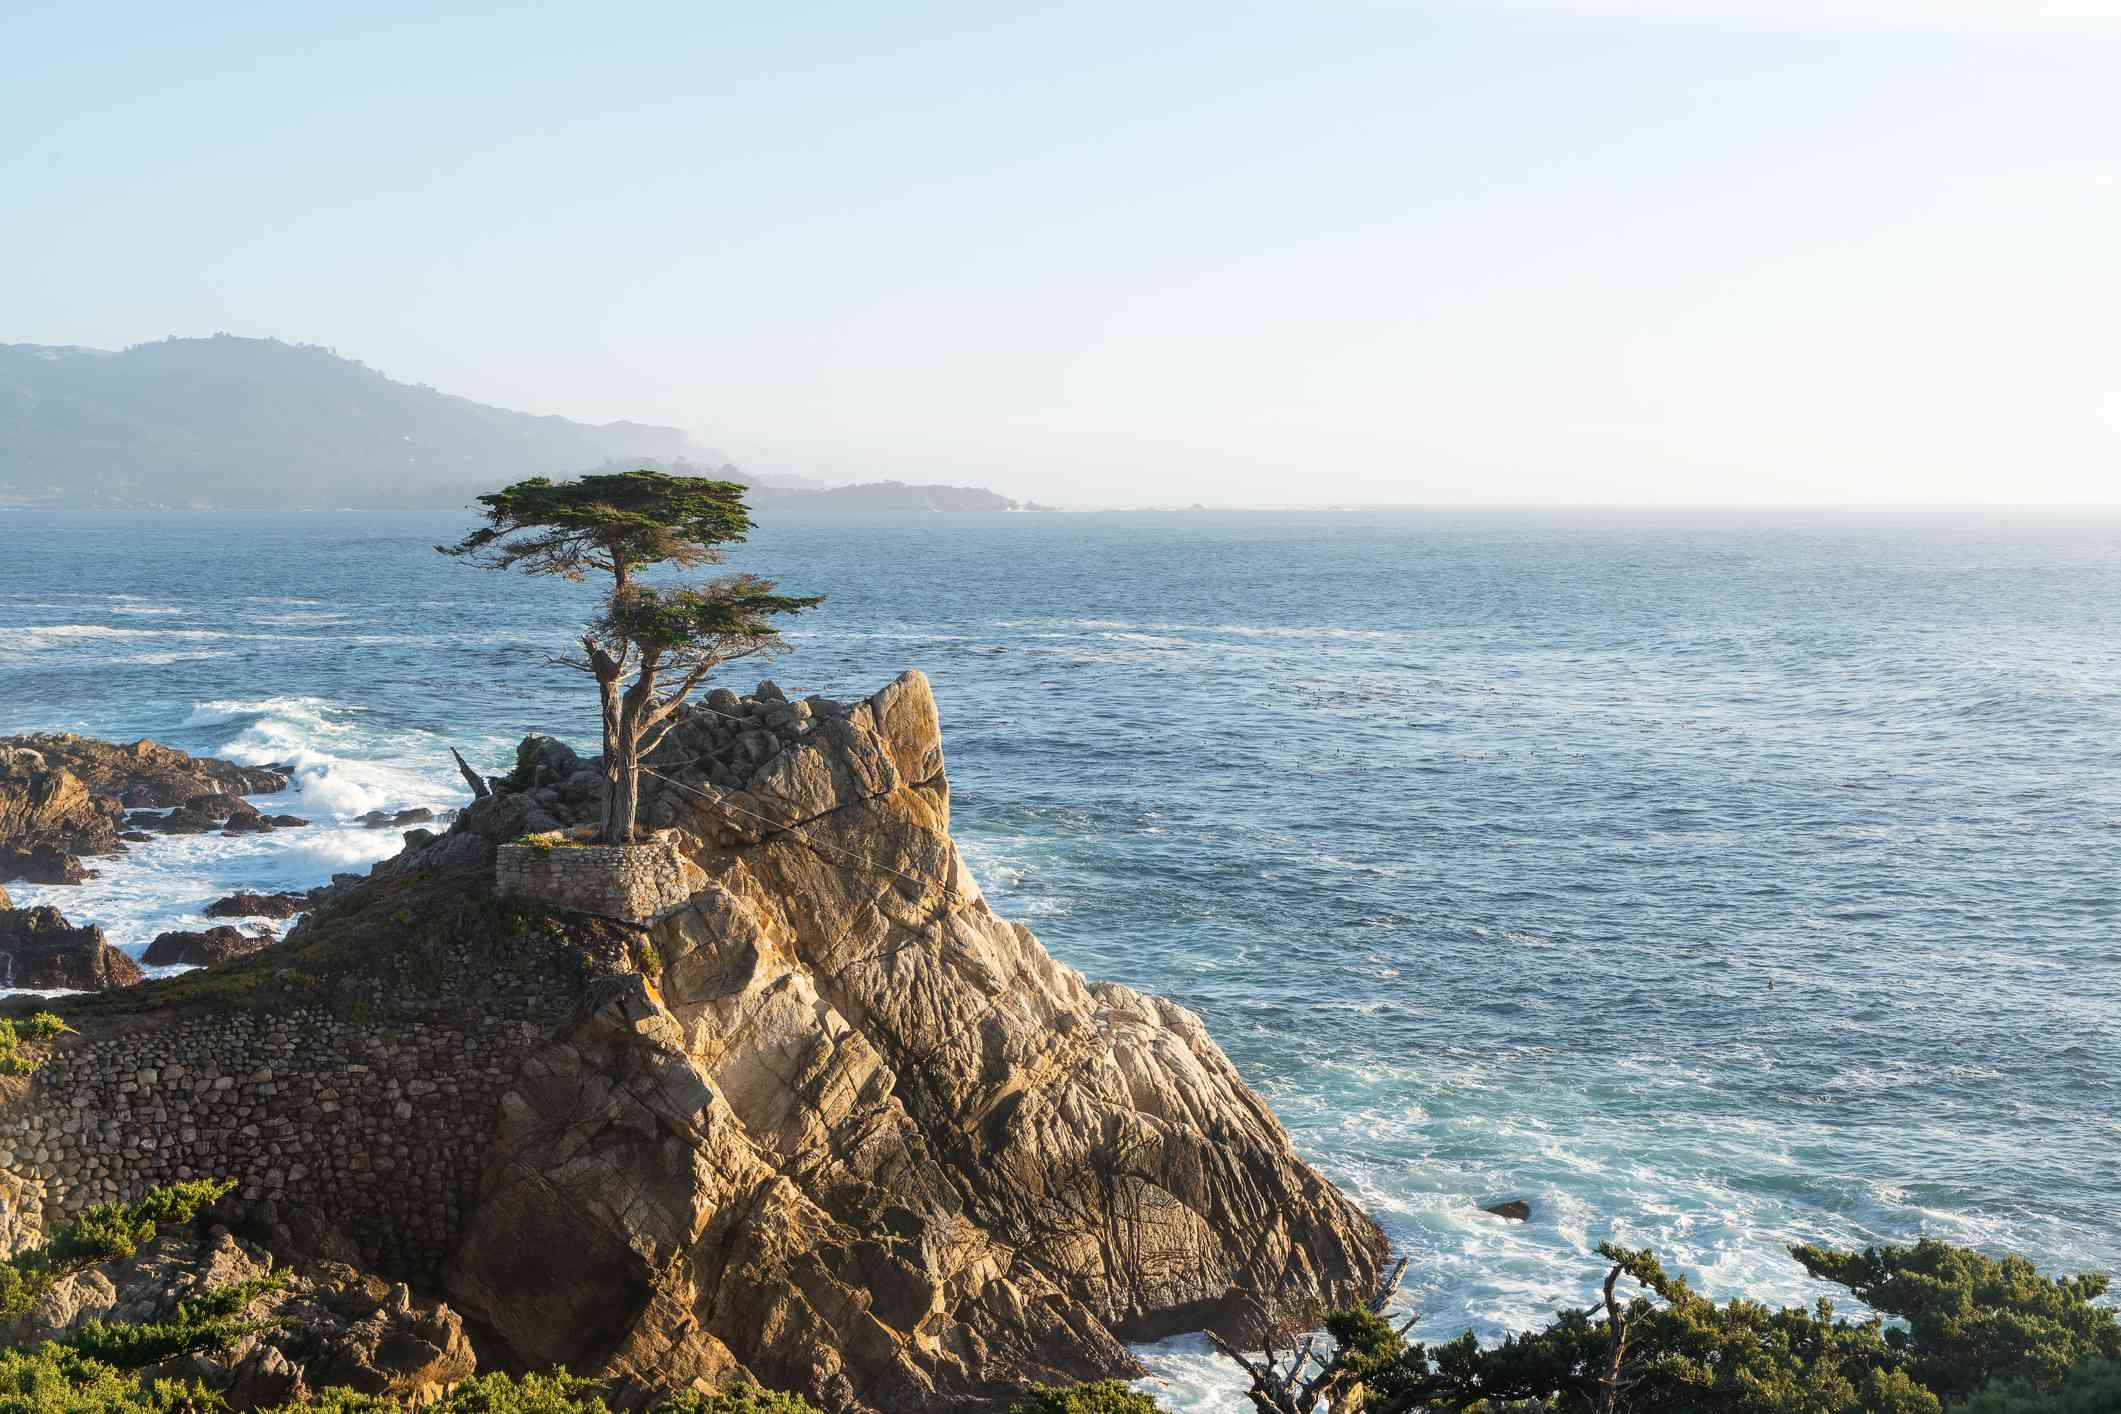 Lone cyprus tree on a cliffside with the ocean in the background